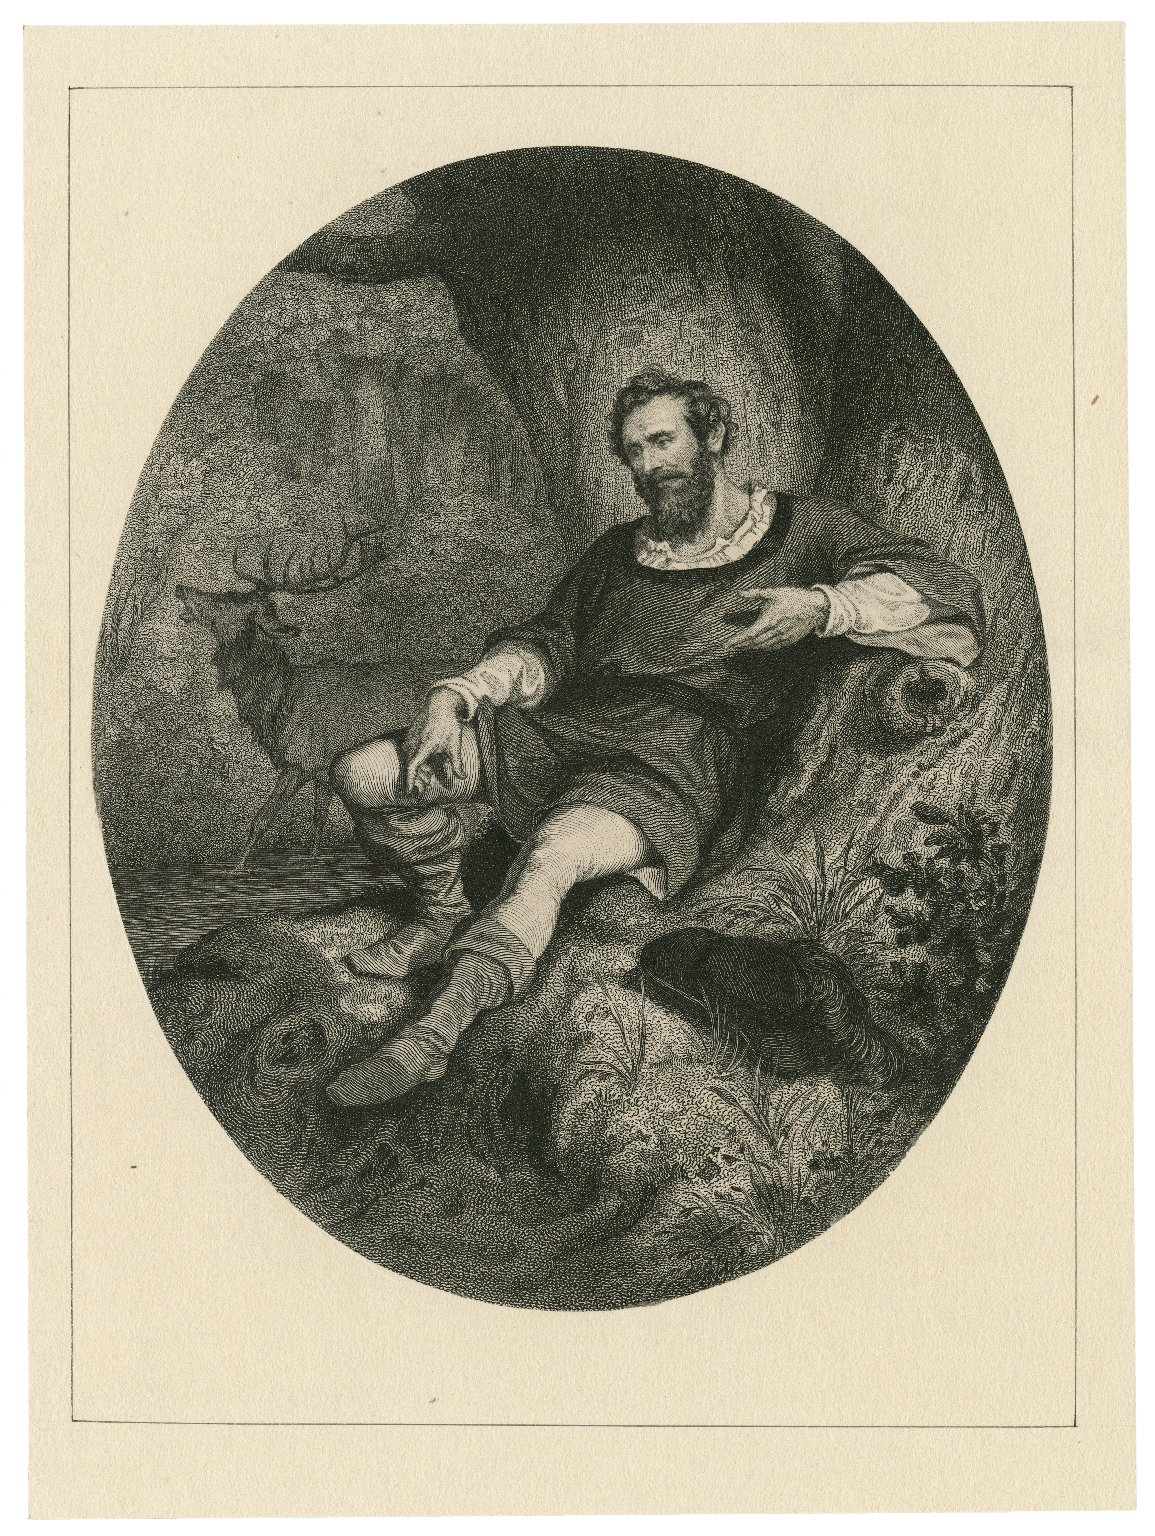 [Mr. James W. Wallack as Jacques in Shakespeare's As you like it] [graphic].